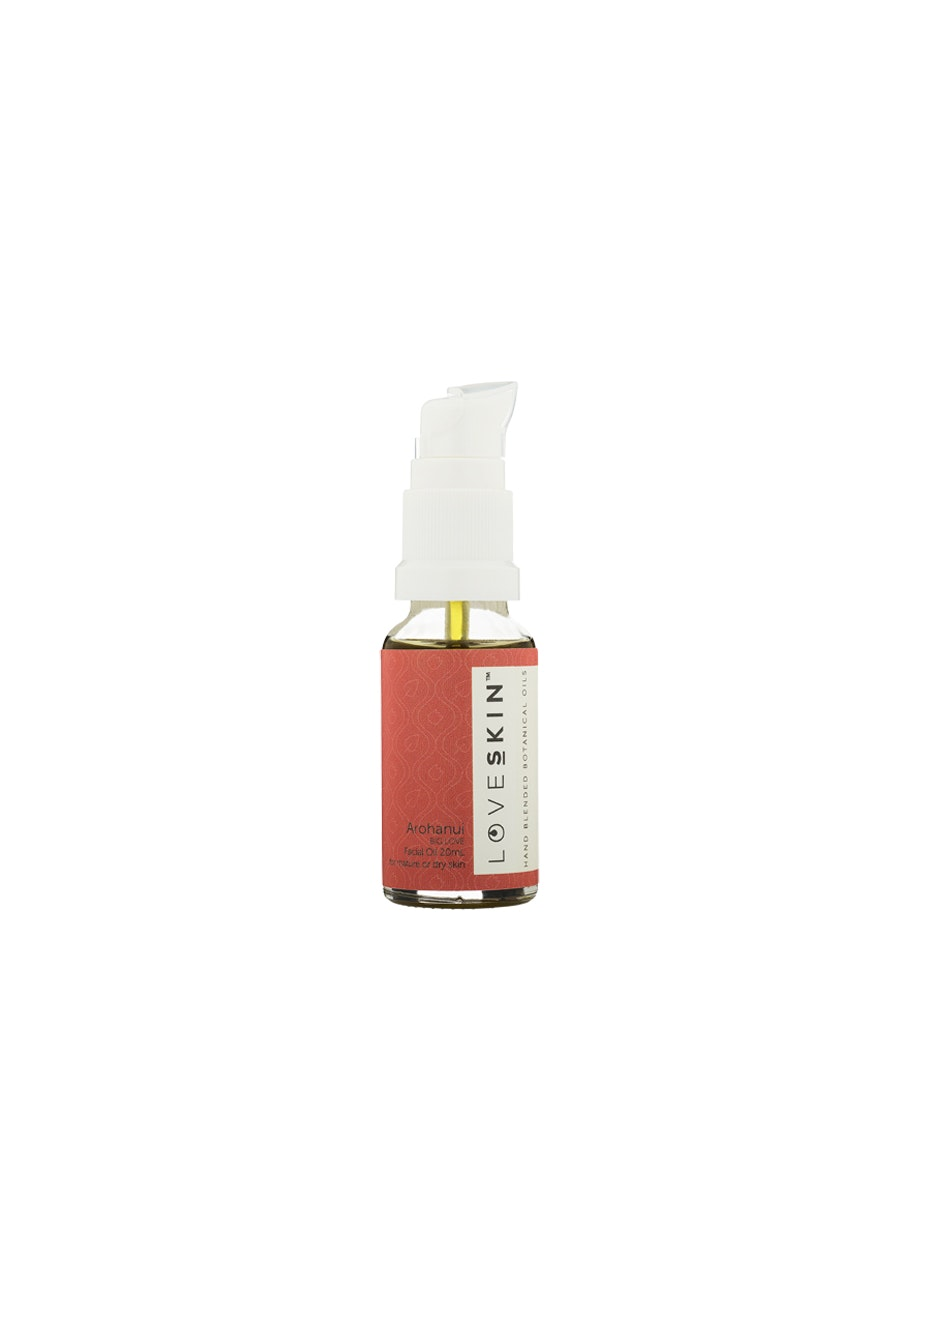 Loveskin - Arohanui Face Oil 20Ml